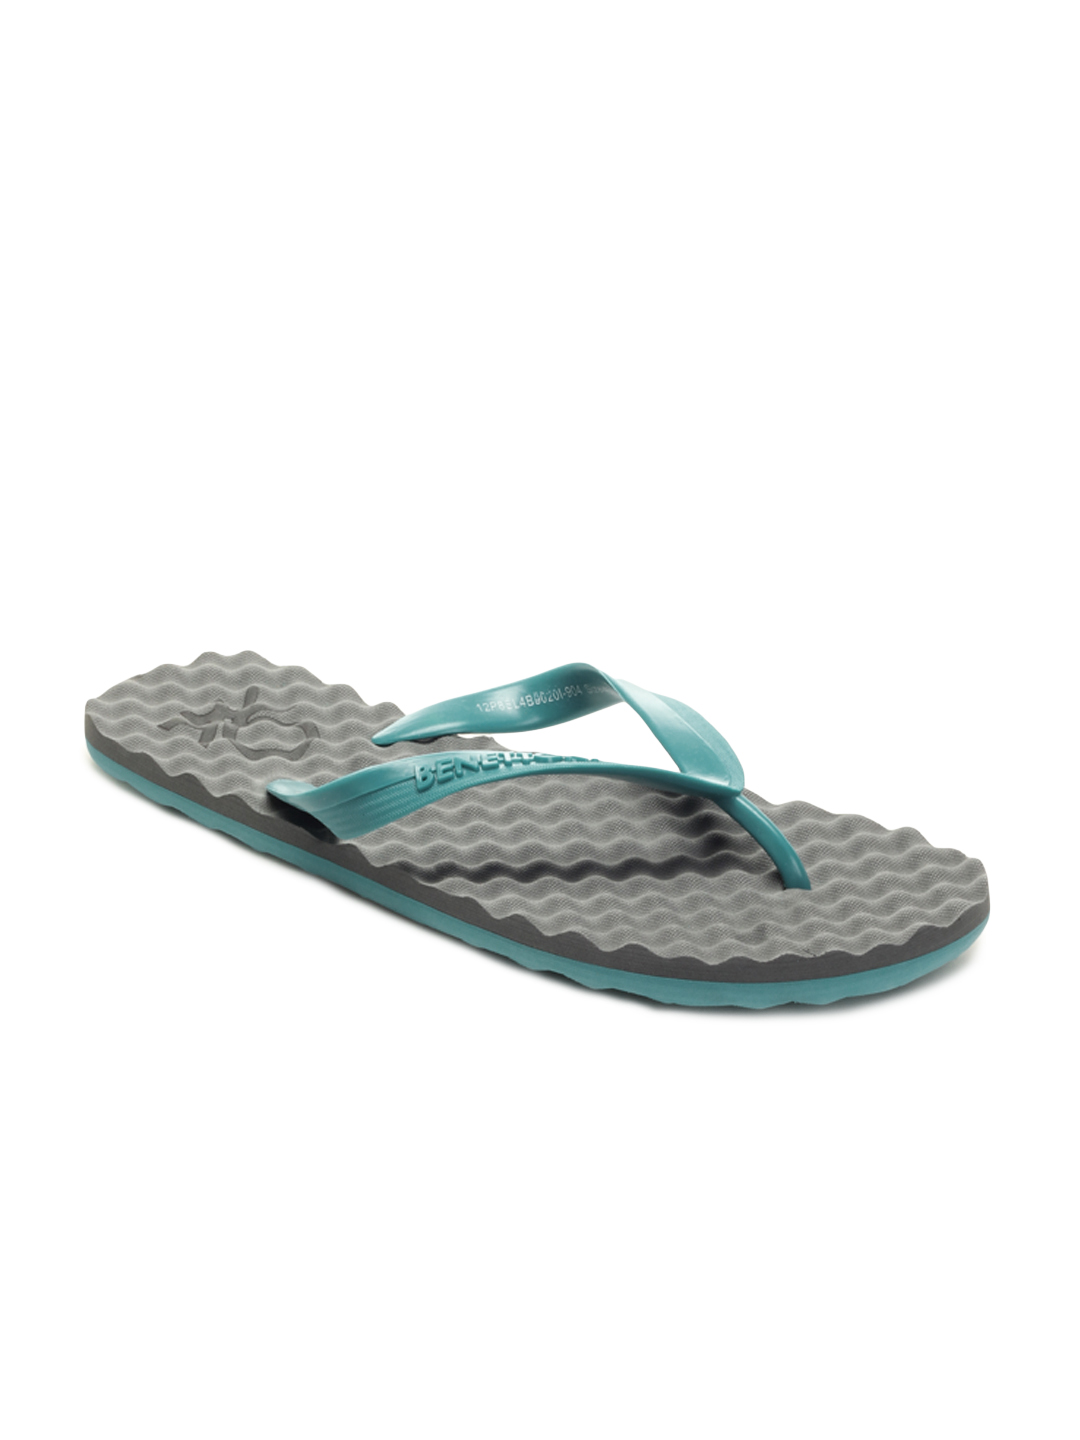 United Colors of Benetton Grey Flip Flops